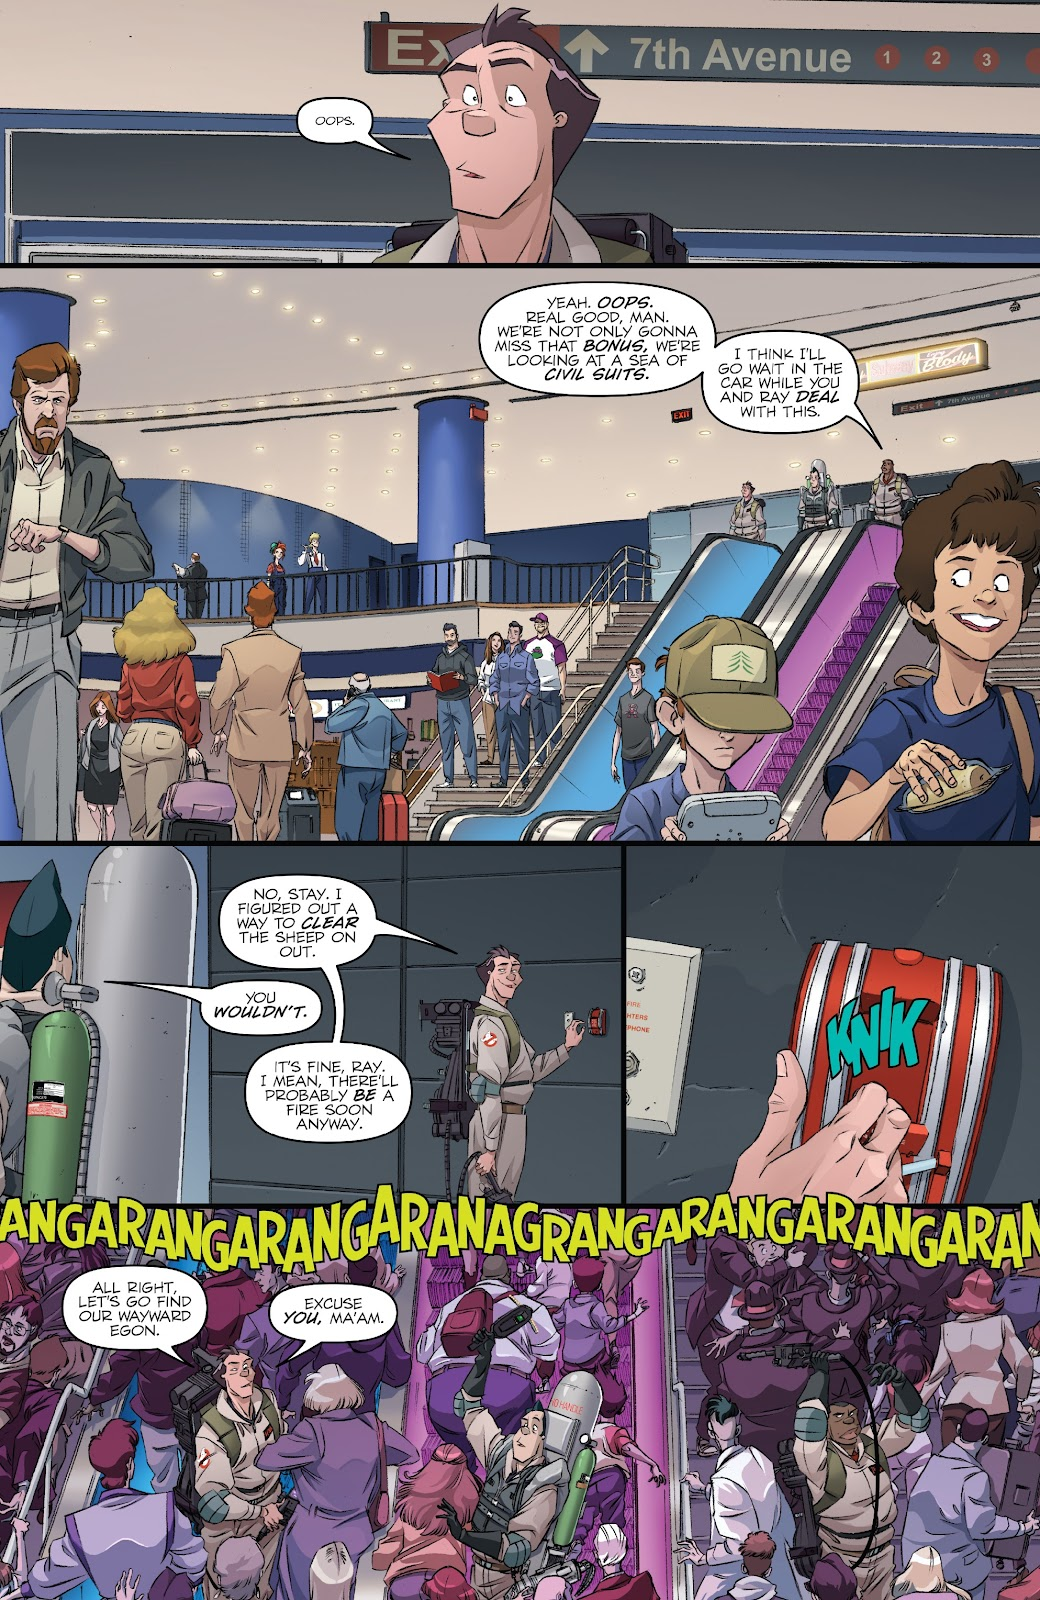 Read online Ghostbusters 35th Anniversary: Ghostbusters comic -  Issue # Full - 13